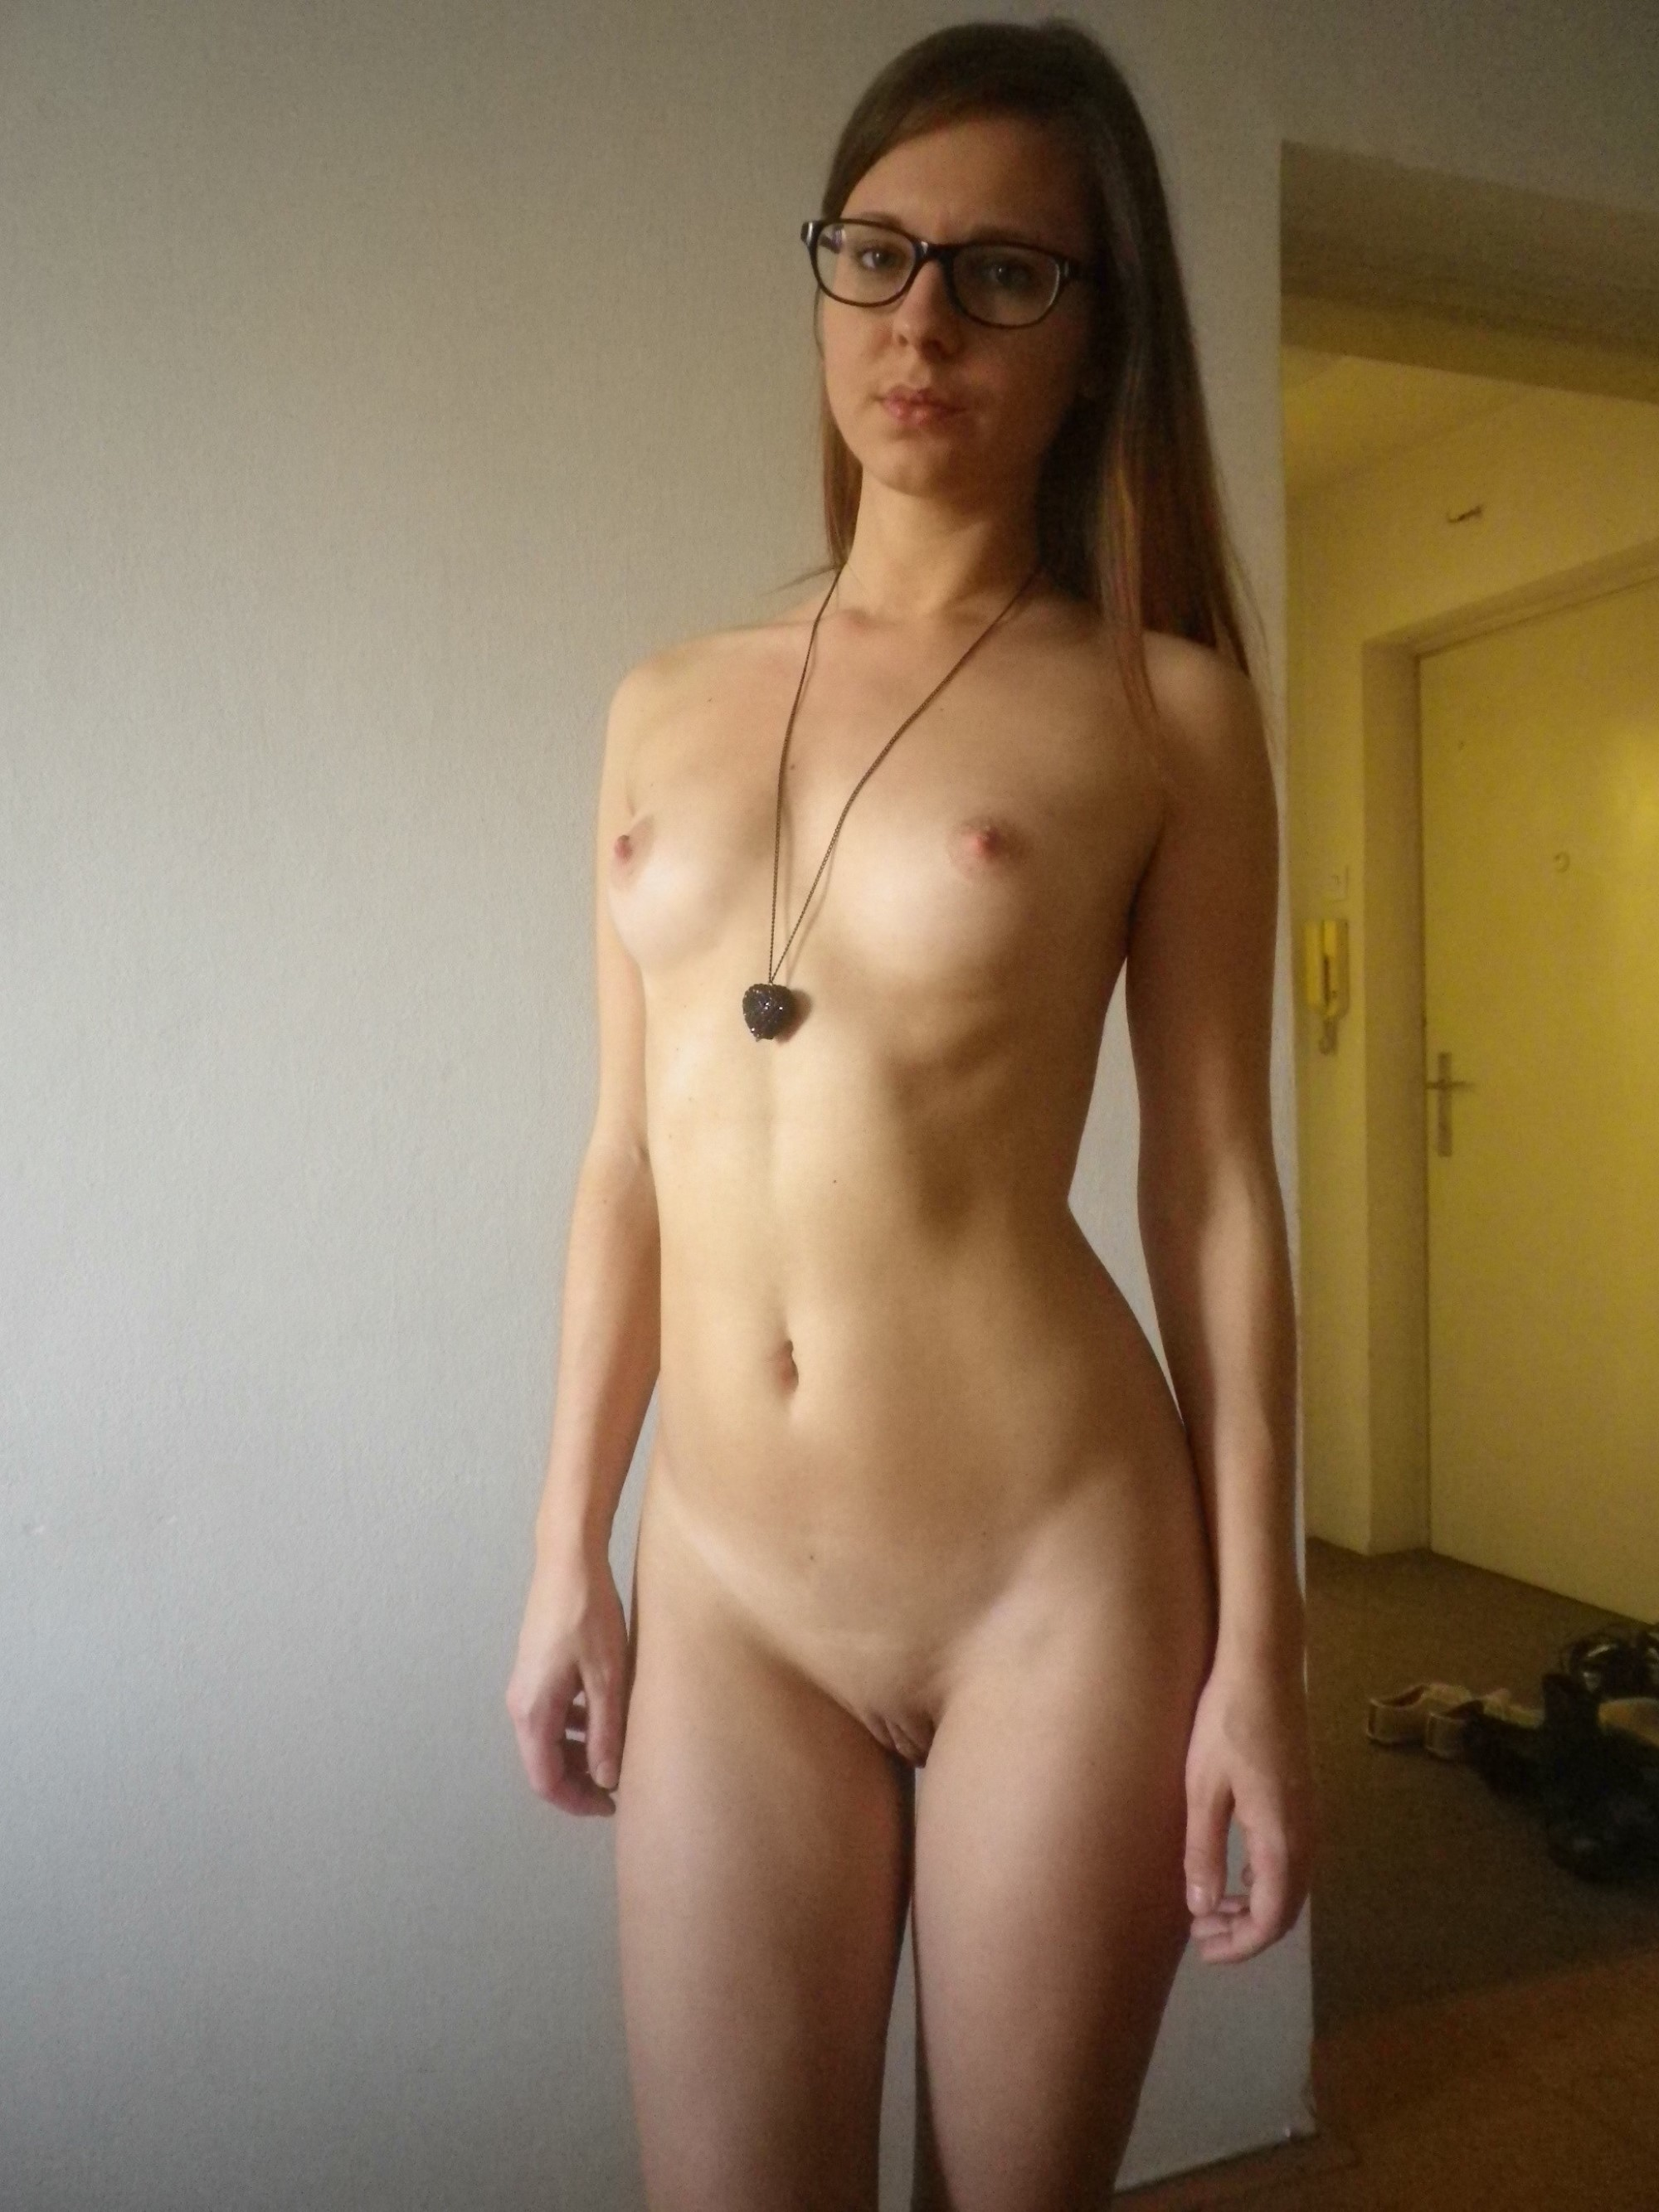 nude-girls-in-glasses-boobs-mix-vol2-61